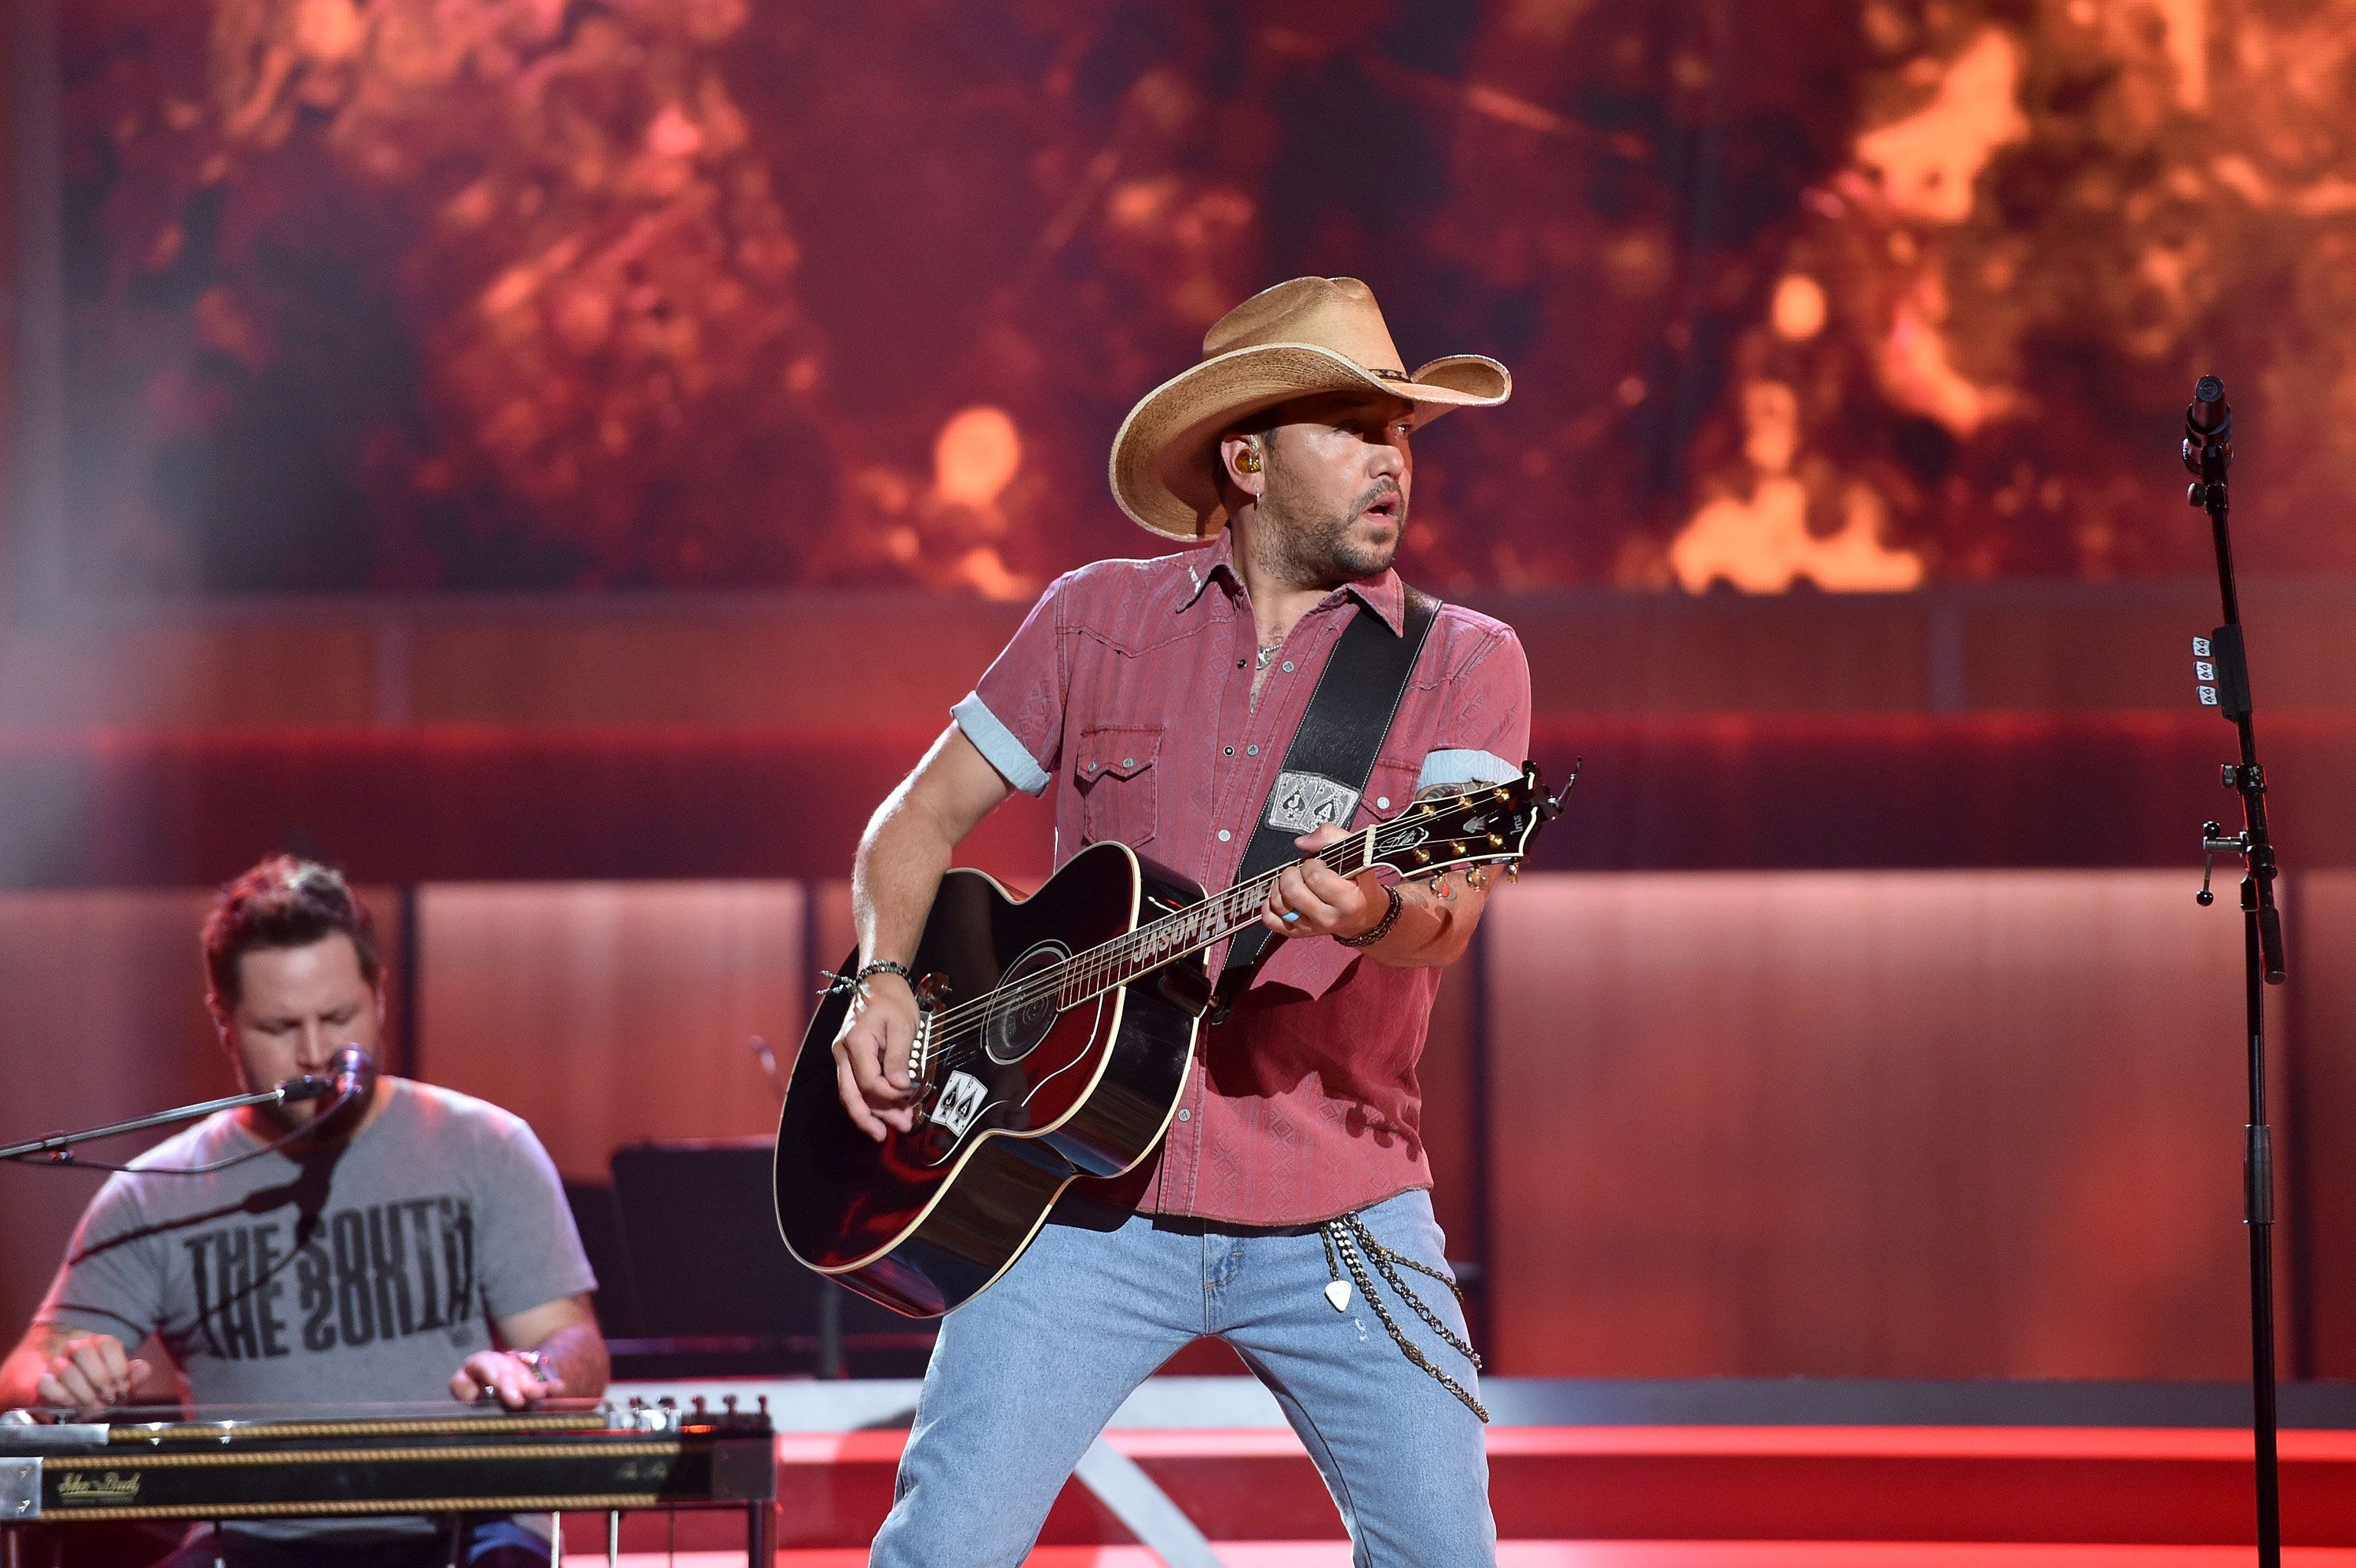 NASHVILLE, TN - AUGUST 30:  Singer Jason Aldean performs during the 10th Annual ACM Honors at the Ryman Auditorium on August 30, 2016 in Nashville, Tennessee.  (Photo by John Shearer/Getty Images for ACM)